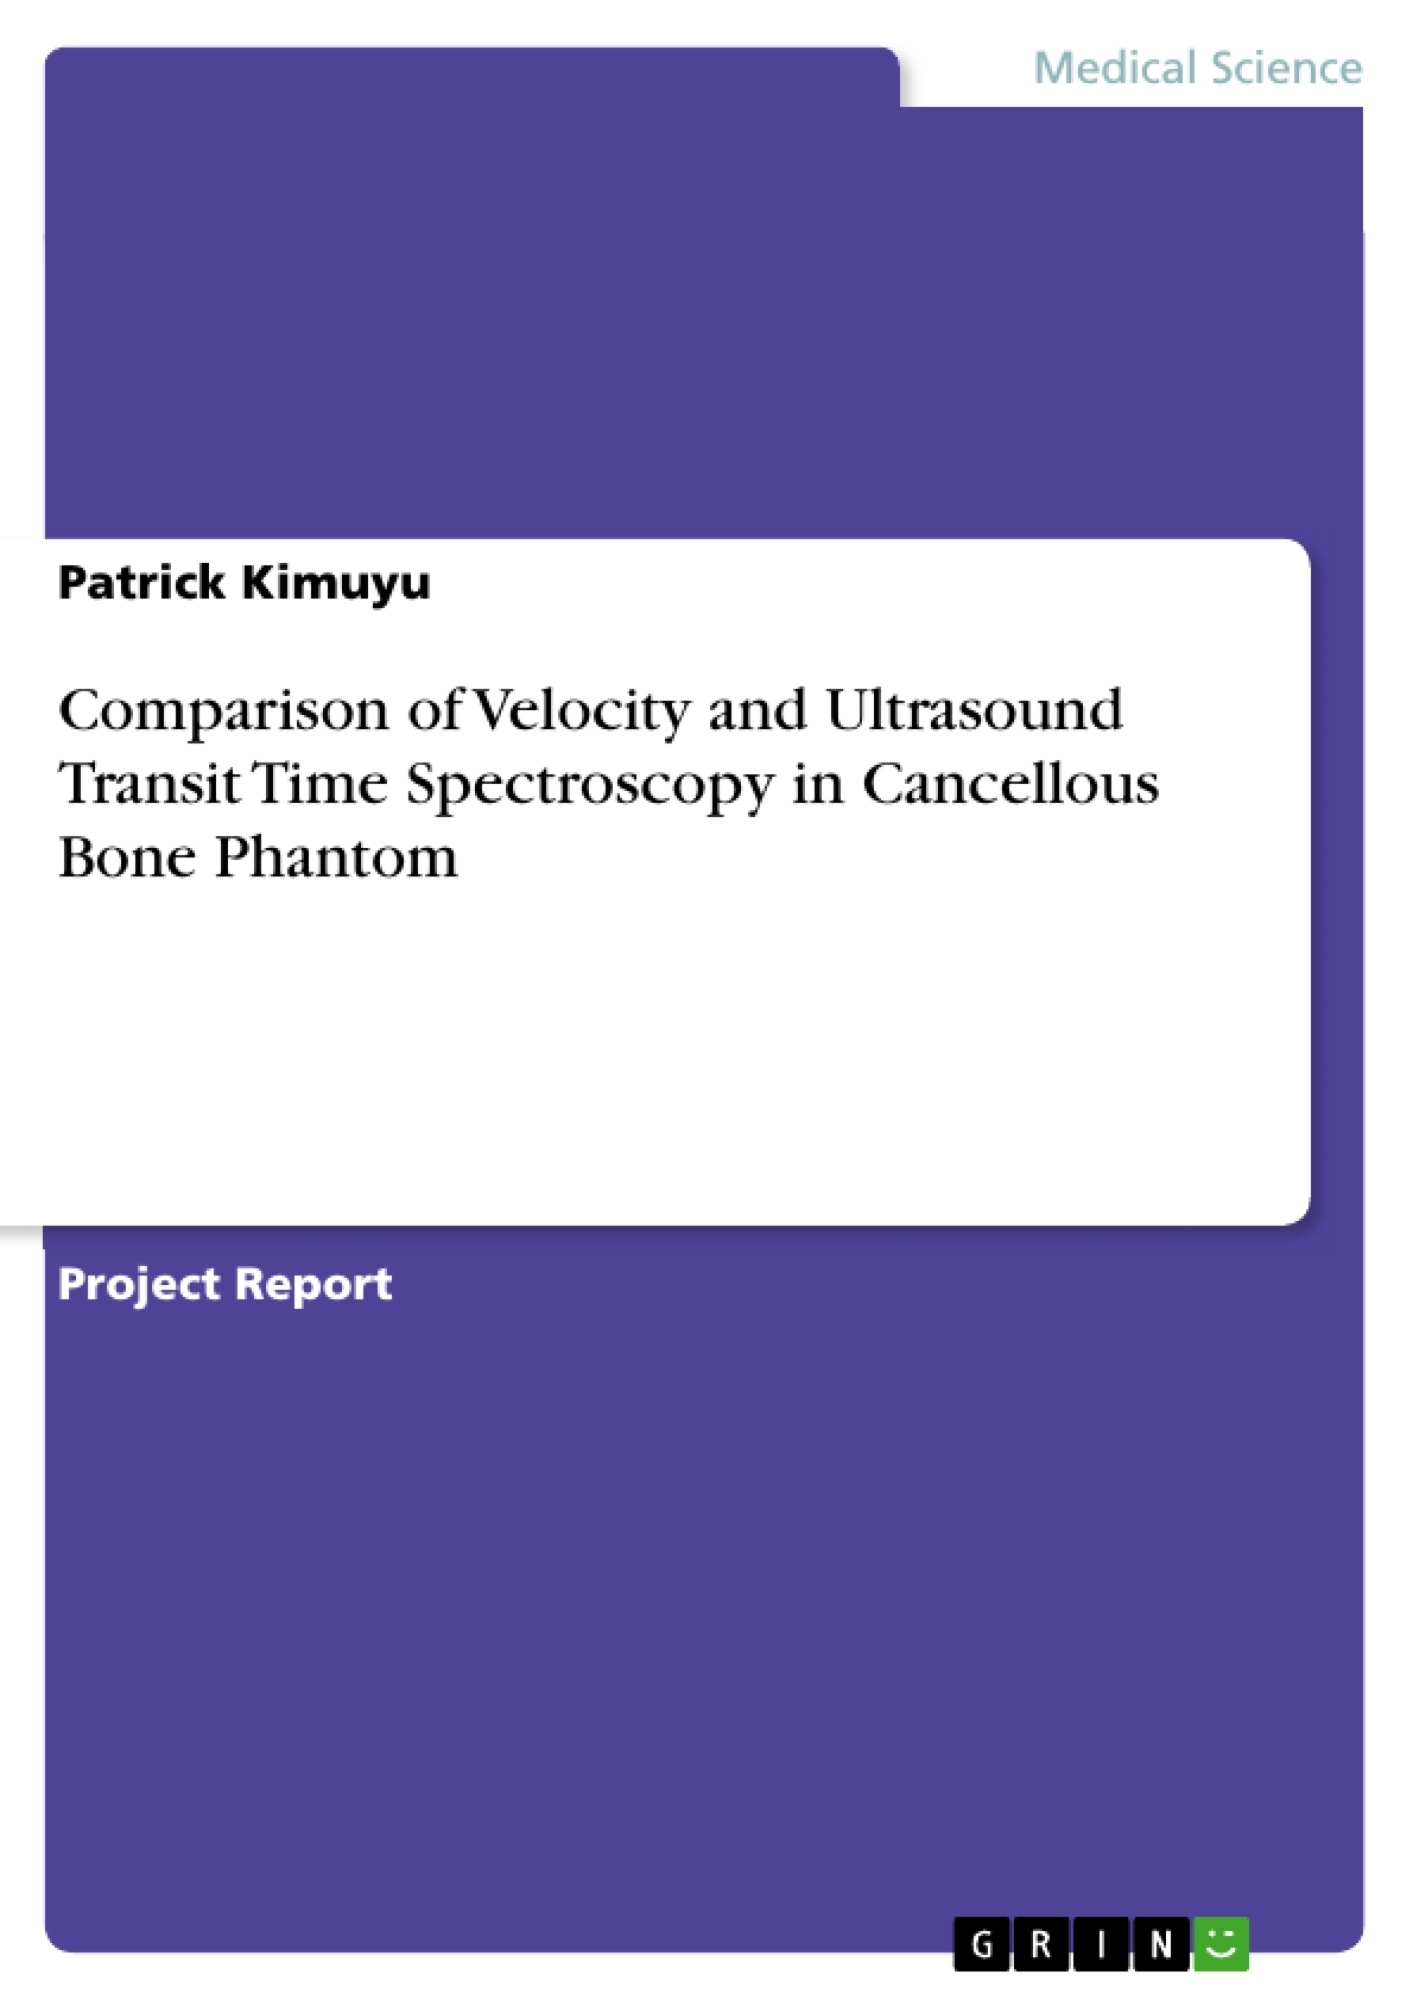 Title: Comparison of Velocity and Ultrasound Transit Time Spectroscopy in Cancellous Bone Phantom